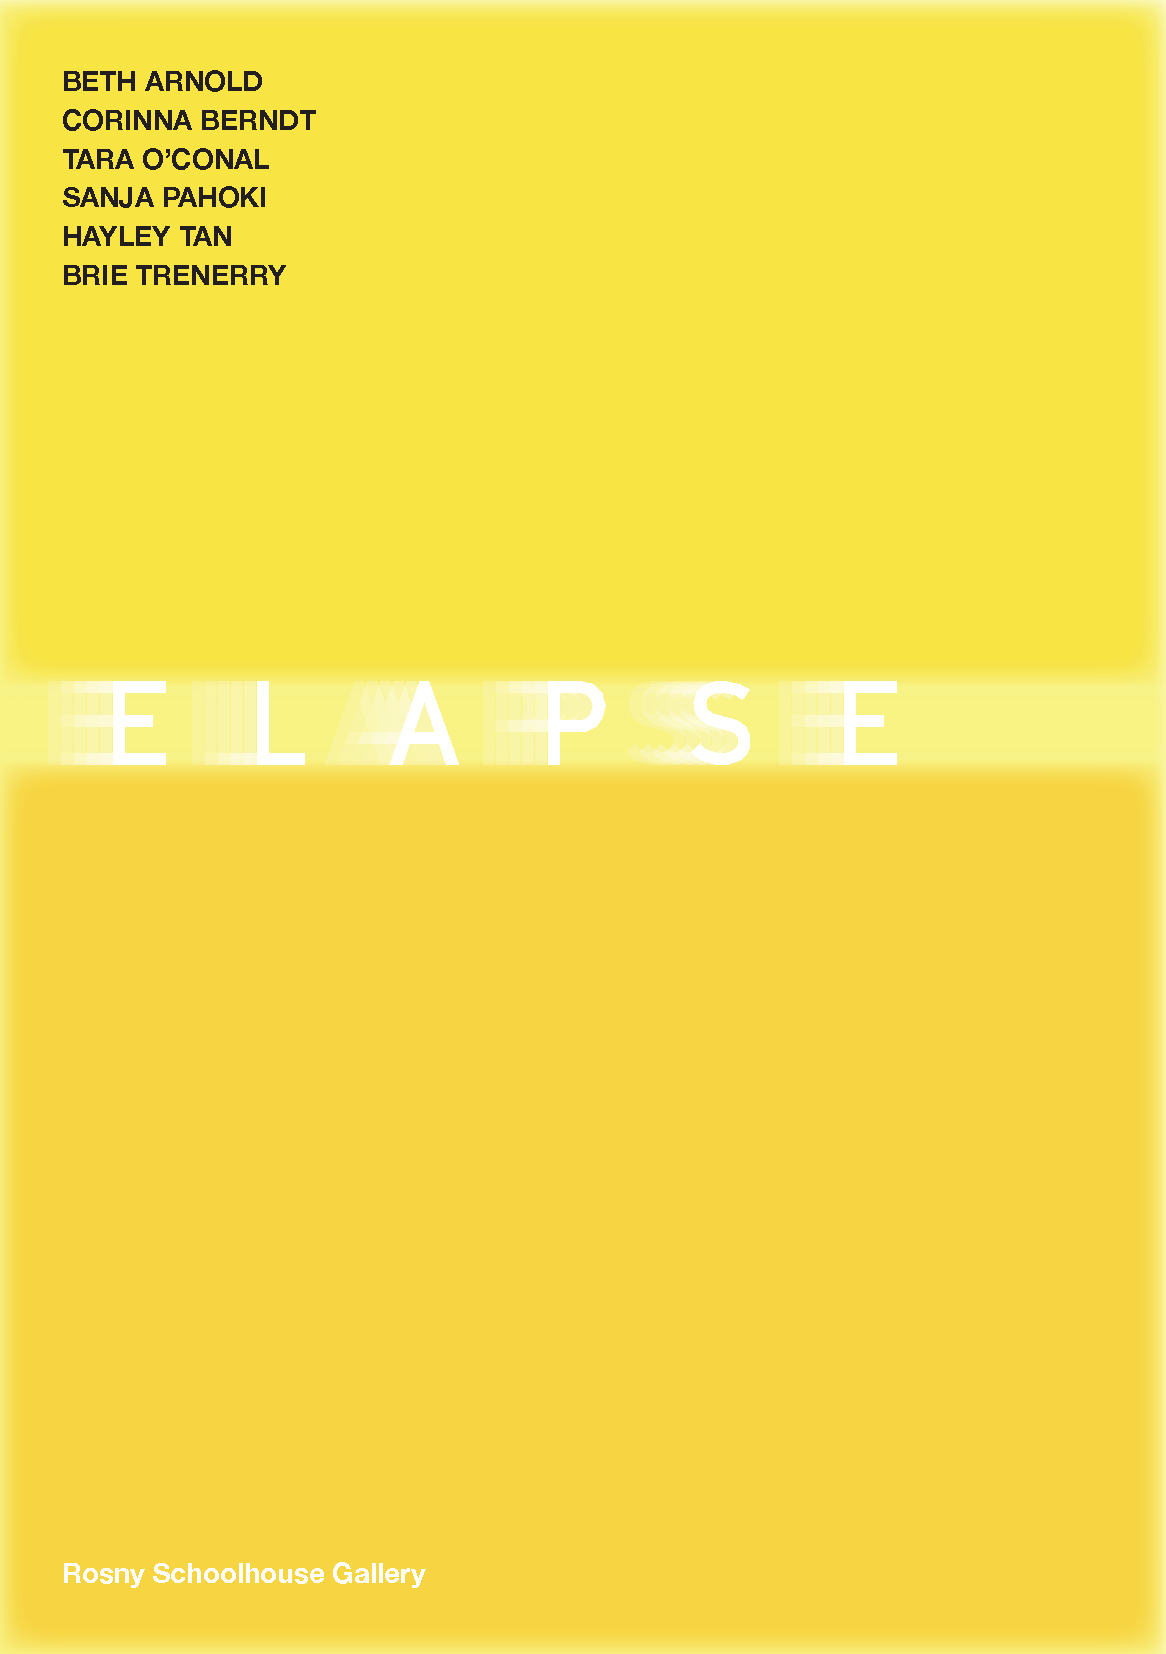 Elapse cover images